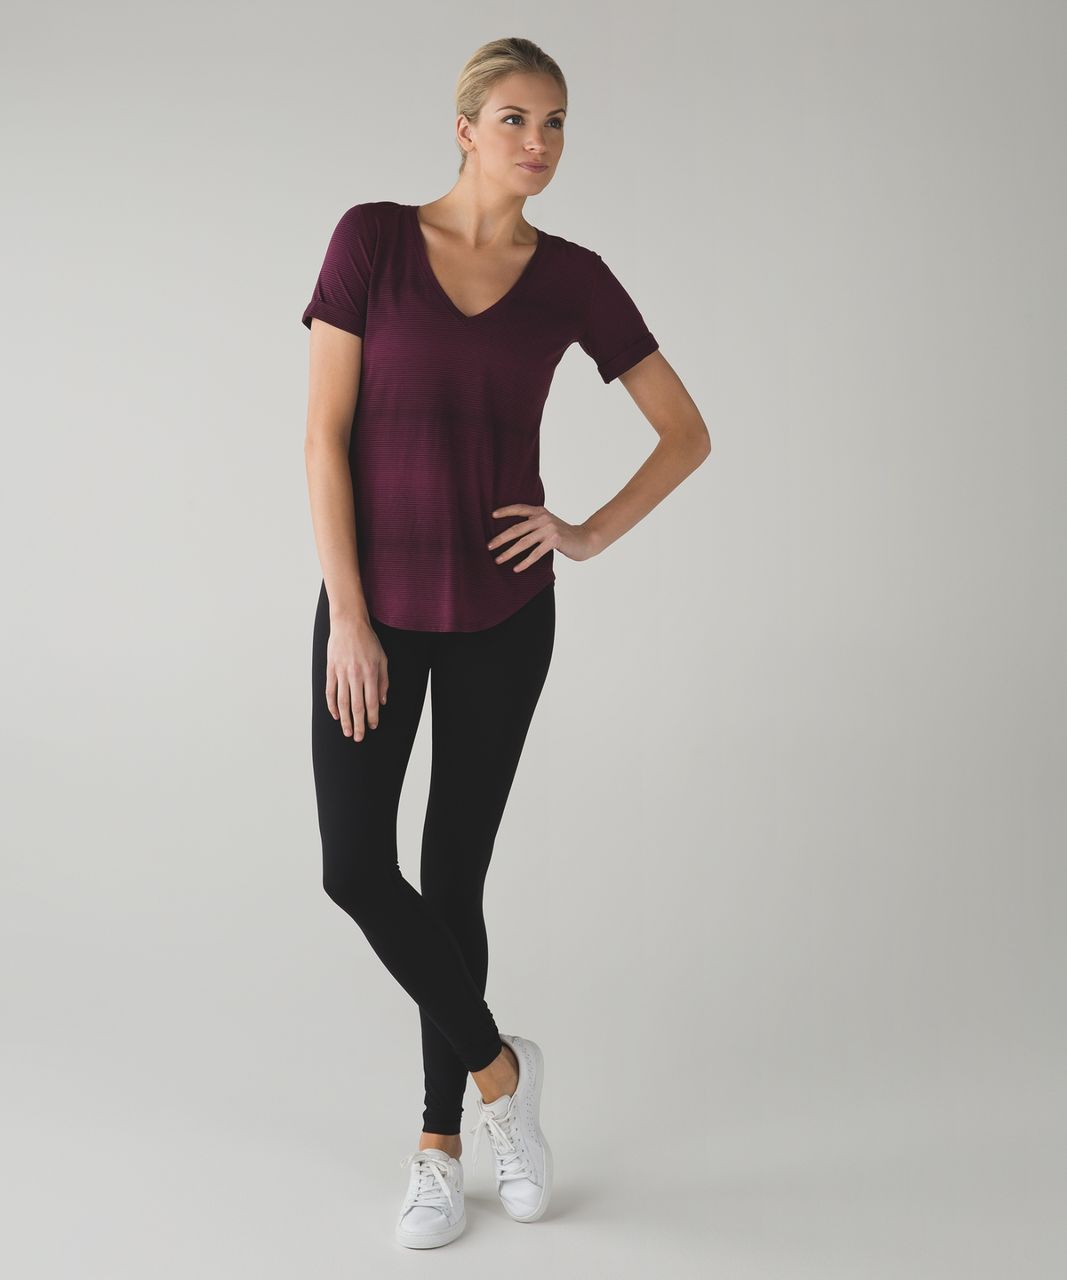 Lululemon Love Tee II - Sugar Cane Stripe Red Grape Bordeaux Drama